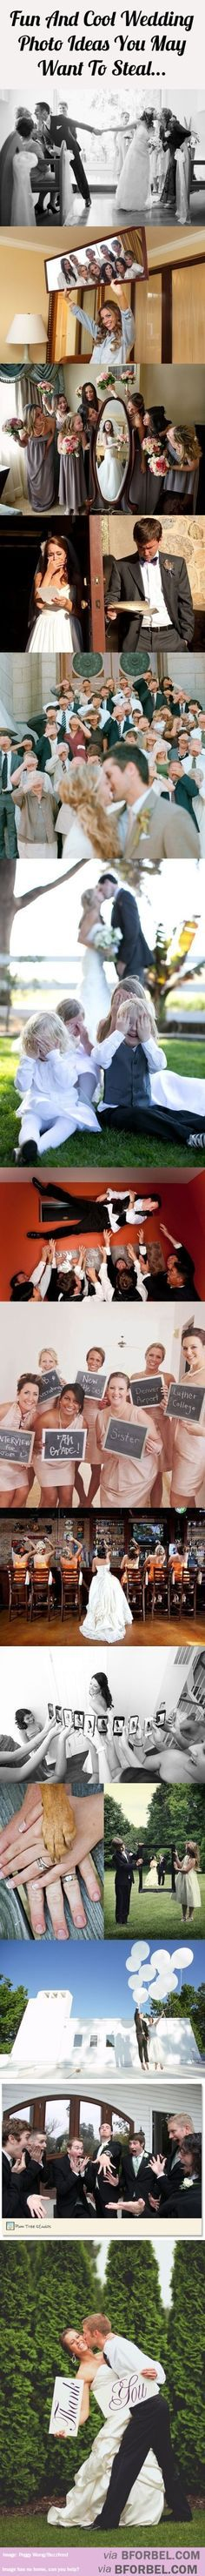 Bague de mariage : 15 Fun And Cool Wedding Photo Ideas You May Want To Steal… - Flashmode Belgium Wedding Goals, Wedding Pictures, Fall Wedding, Our Wedding, Wedding Planning, Dream Wedding, Couple Pictures, Trendy Wedding, Funny Pictures